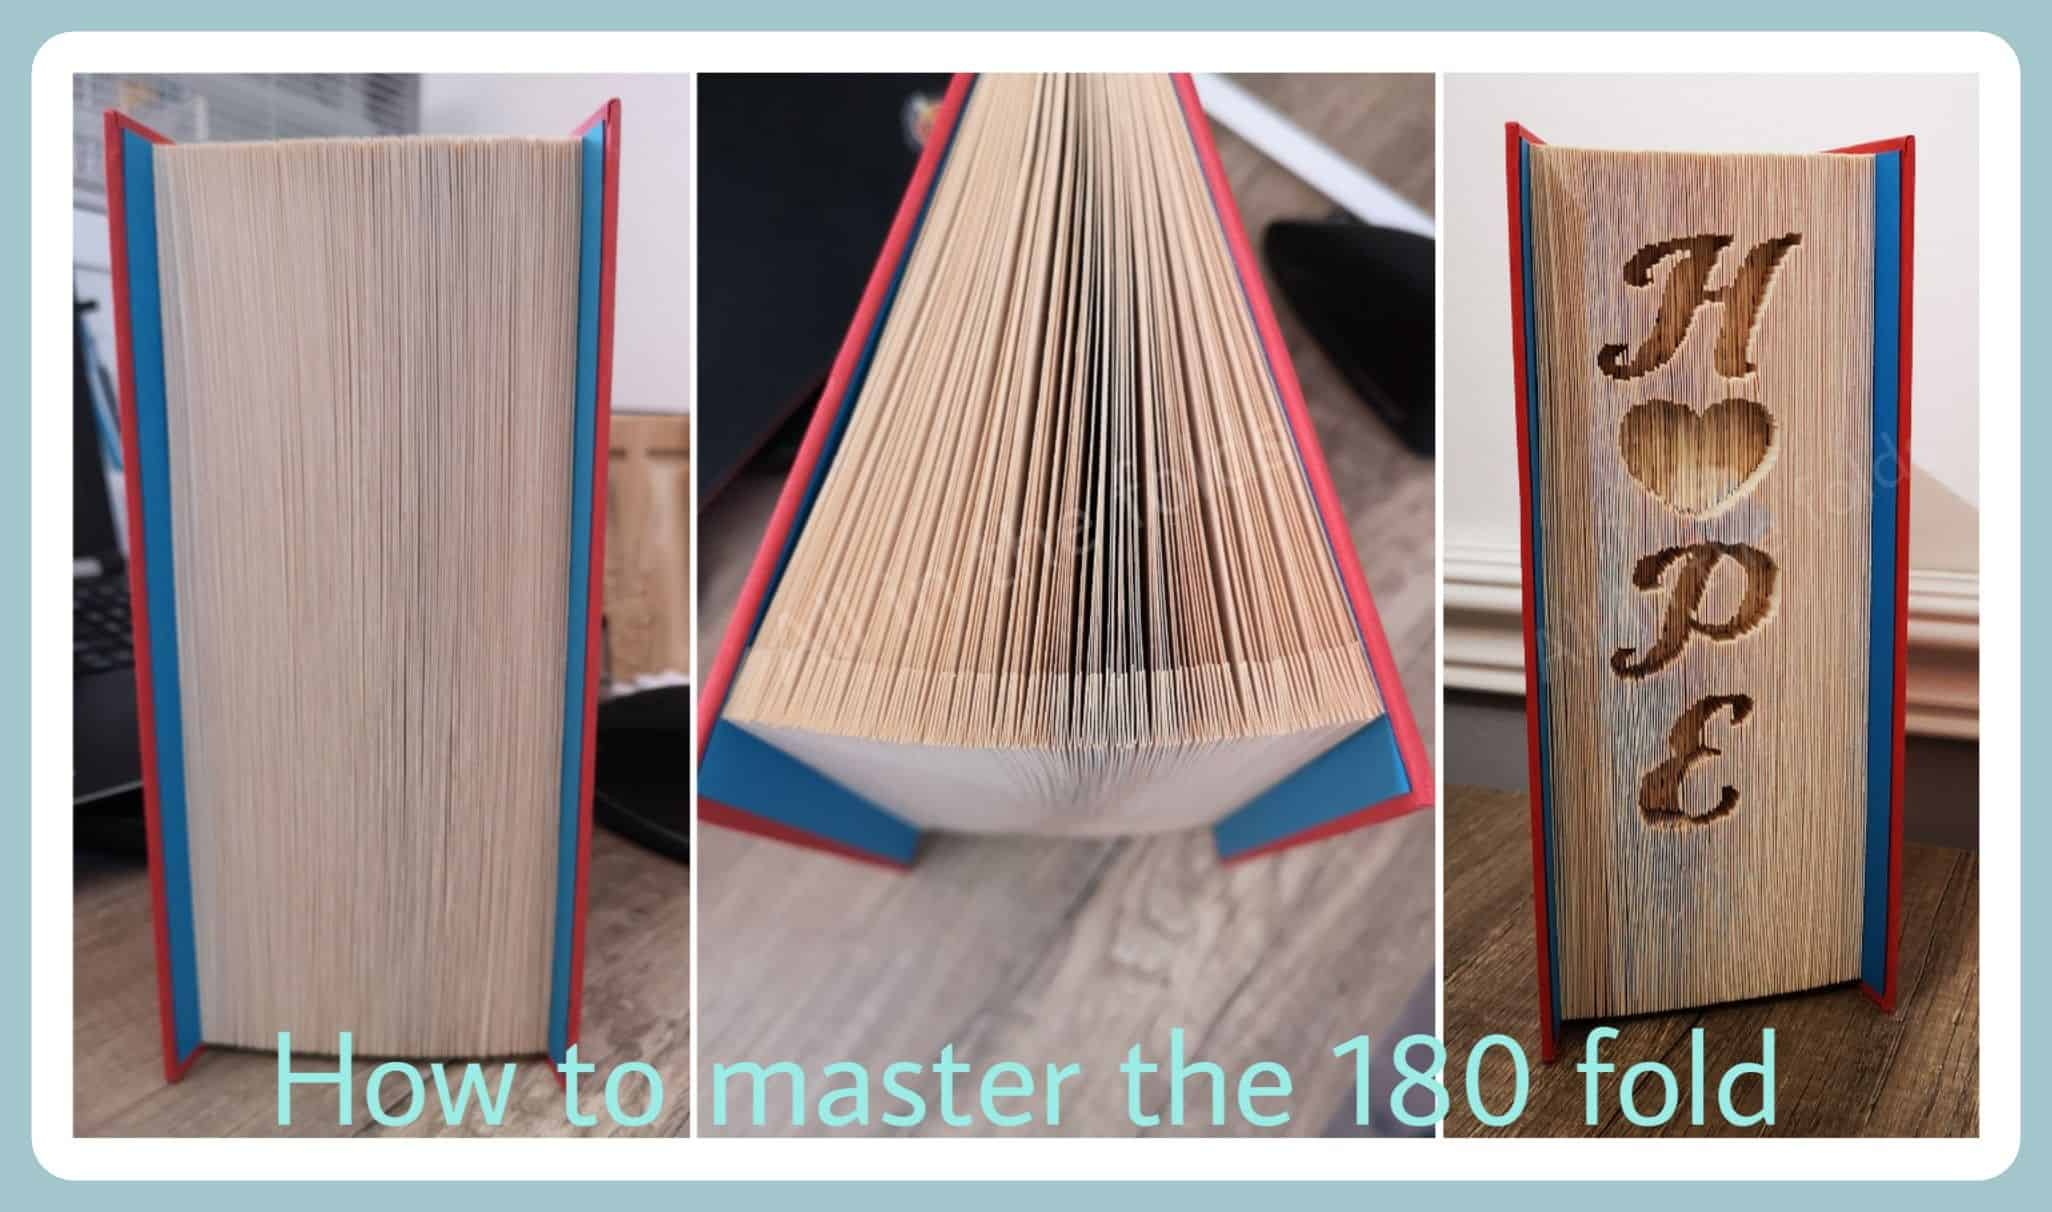 Book Fold Cut and Fold Instructions Folded Book Pattern Only 180 Invert Home BOOK FOLDING PATTERN